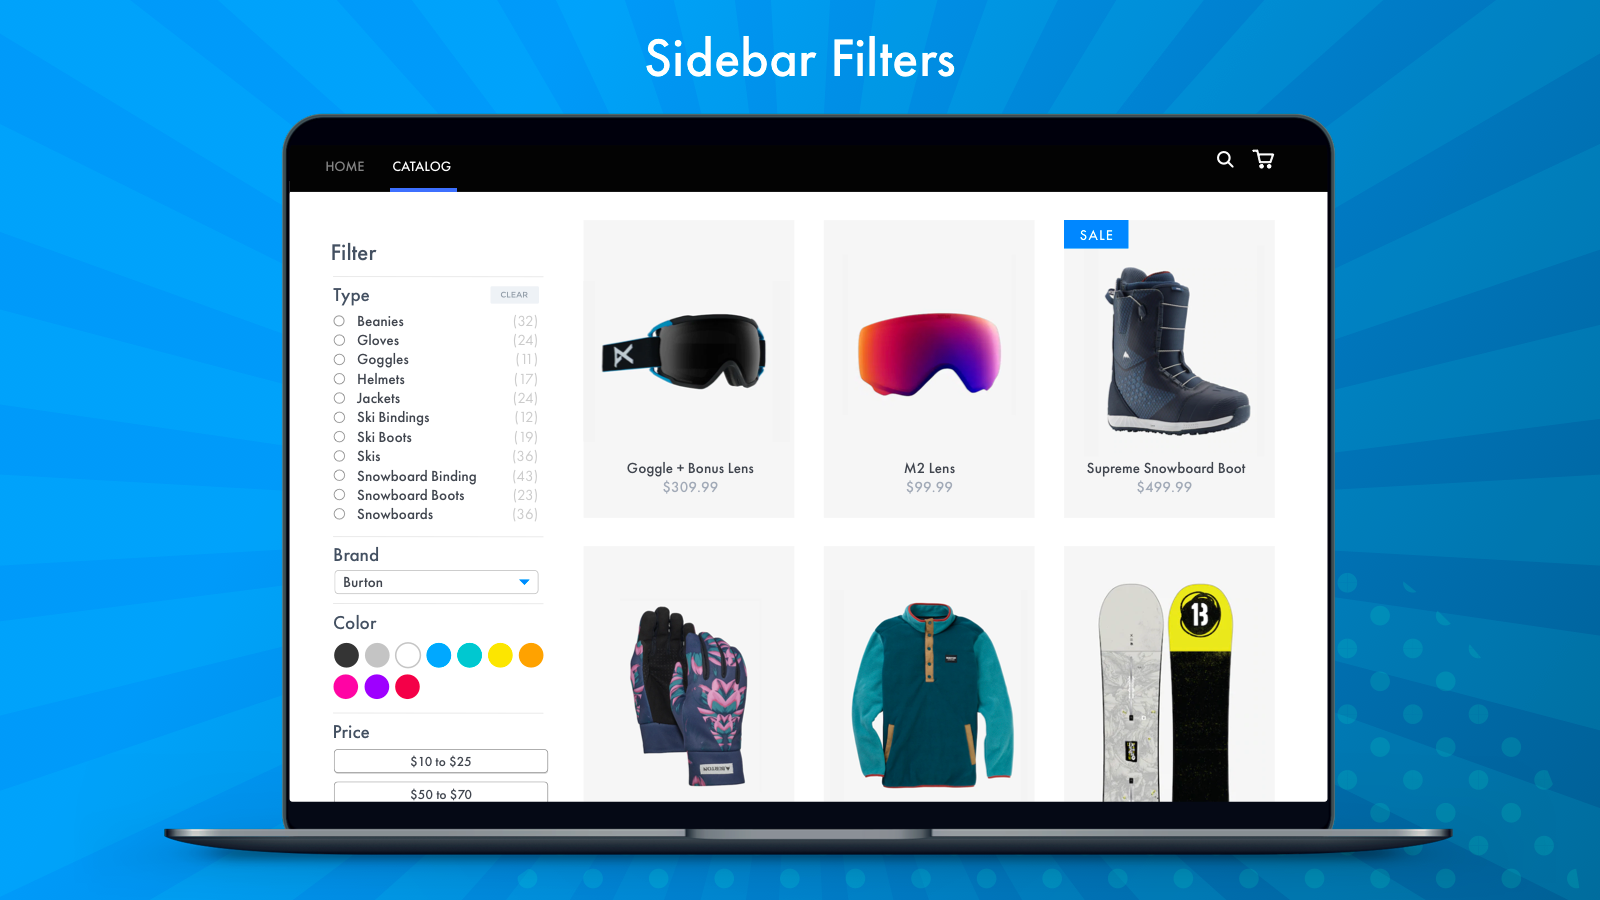 Sidebar Collection Filtering